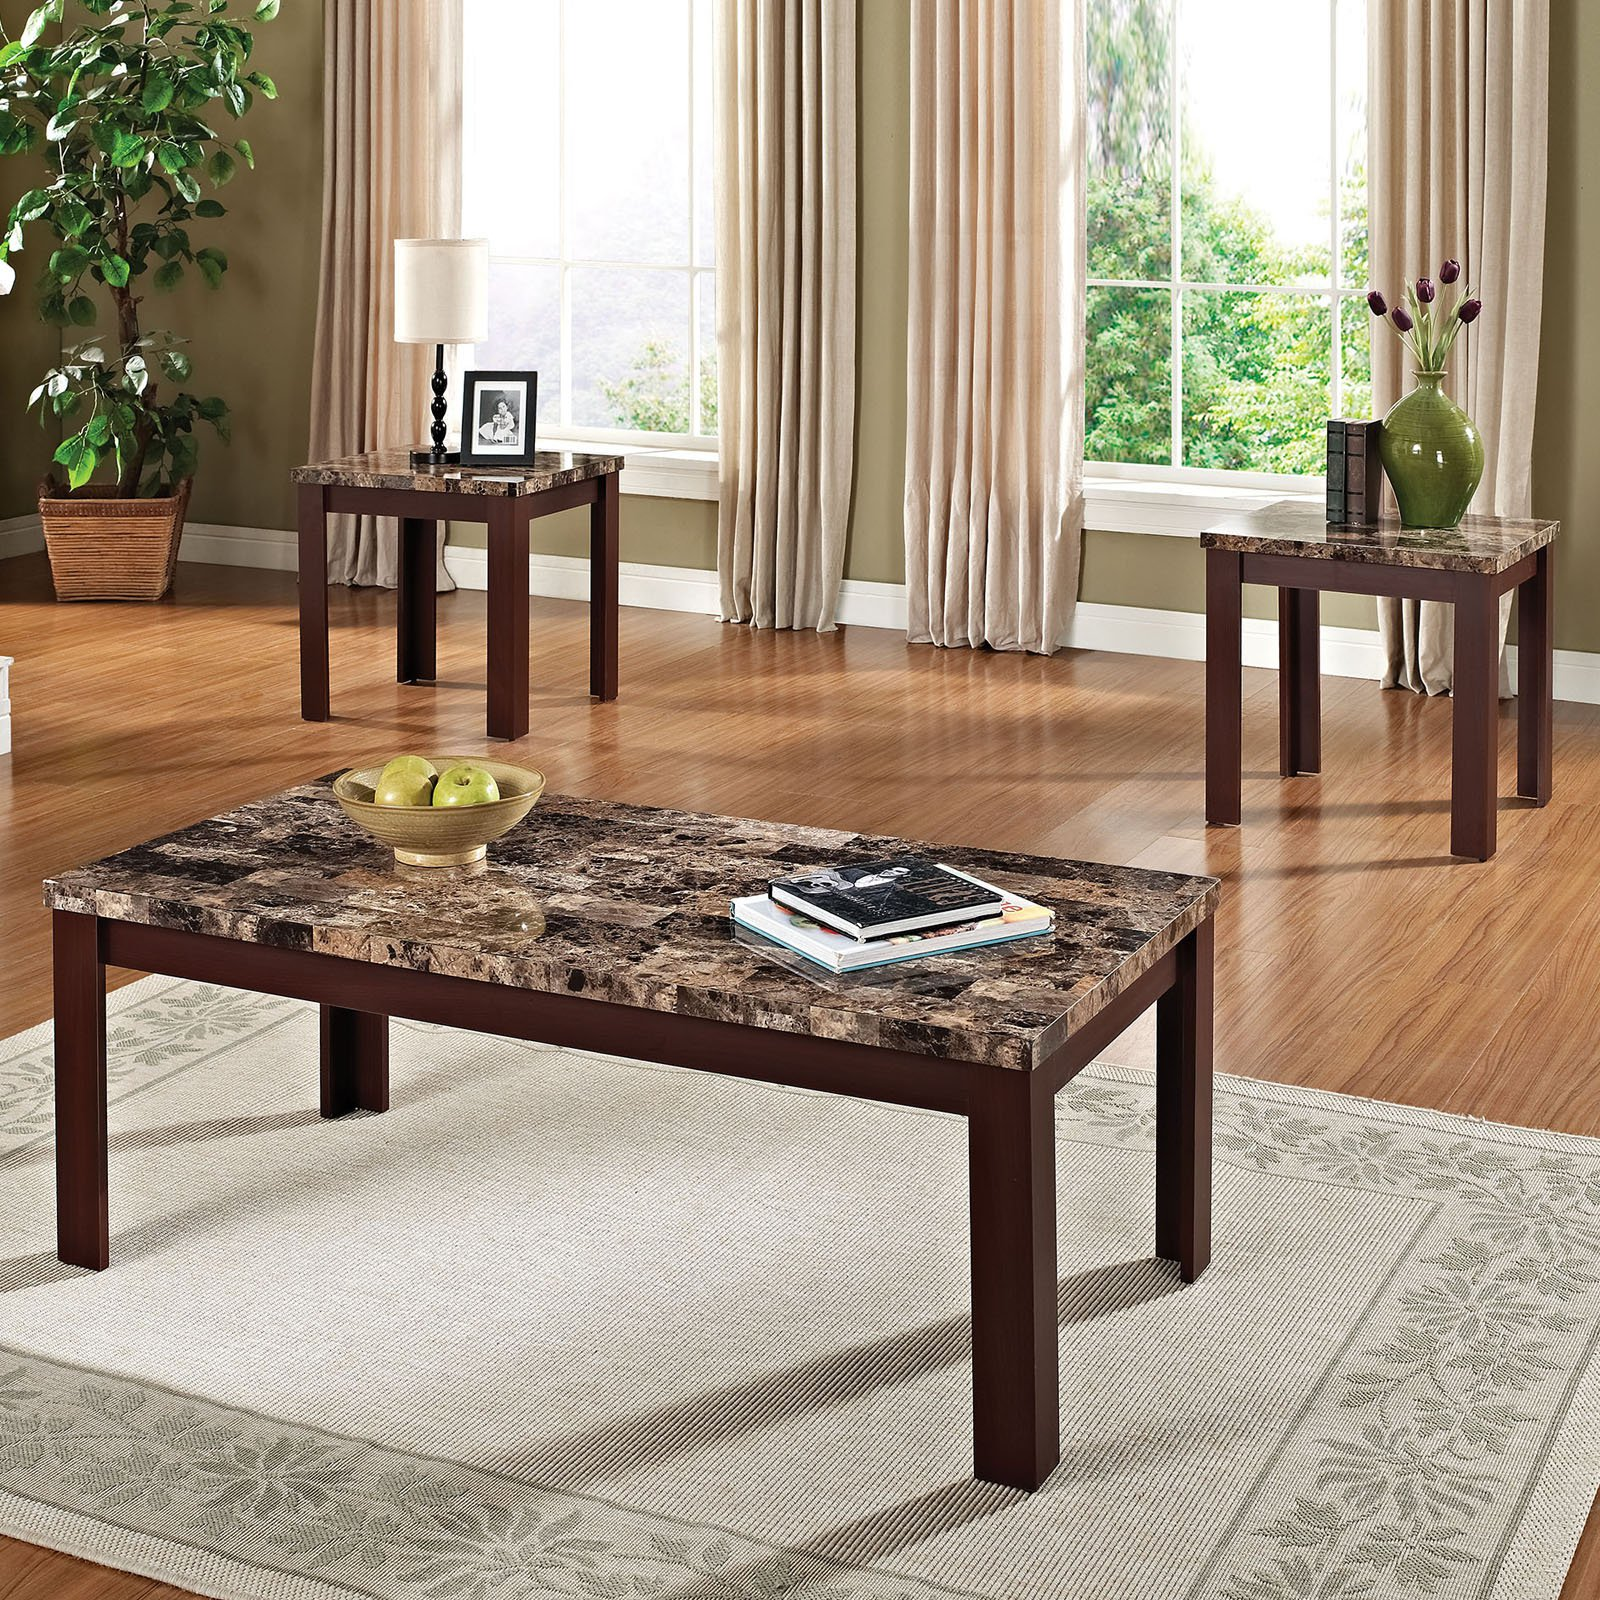 faux marble piece coffee and end table set brown cherry dark tables best slipcovered sofas scalloped wall shelf mirror pipe industrial furniture royal coimbatore tamil nadu simple